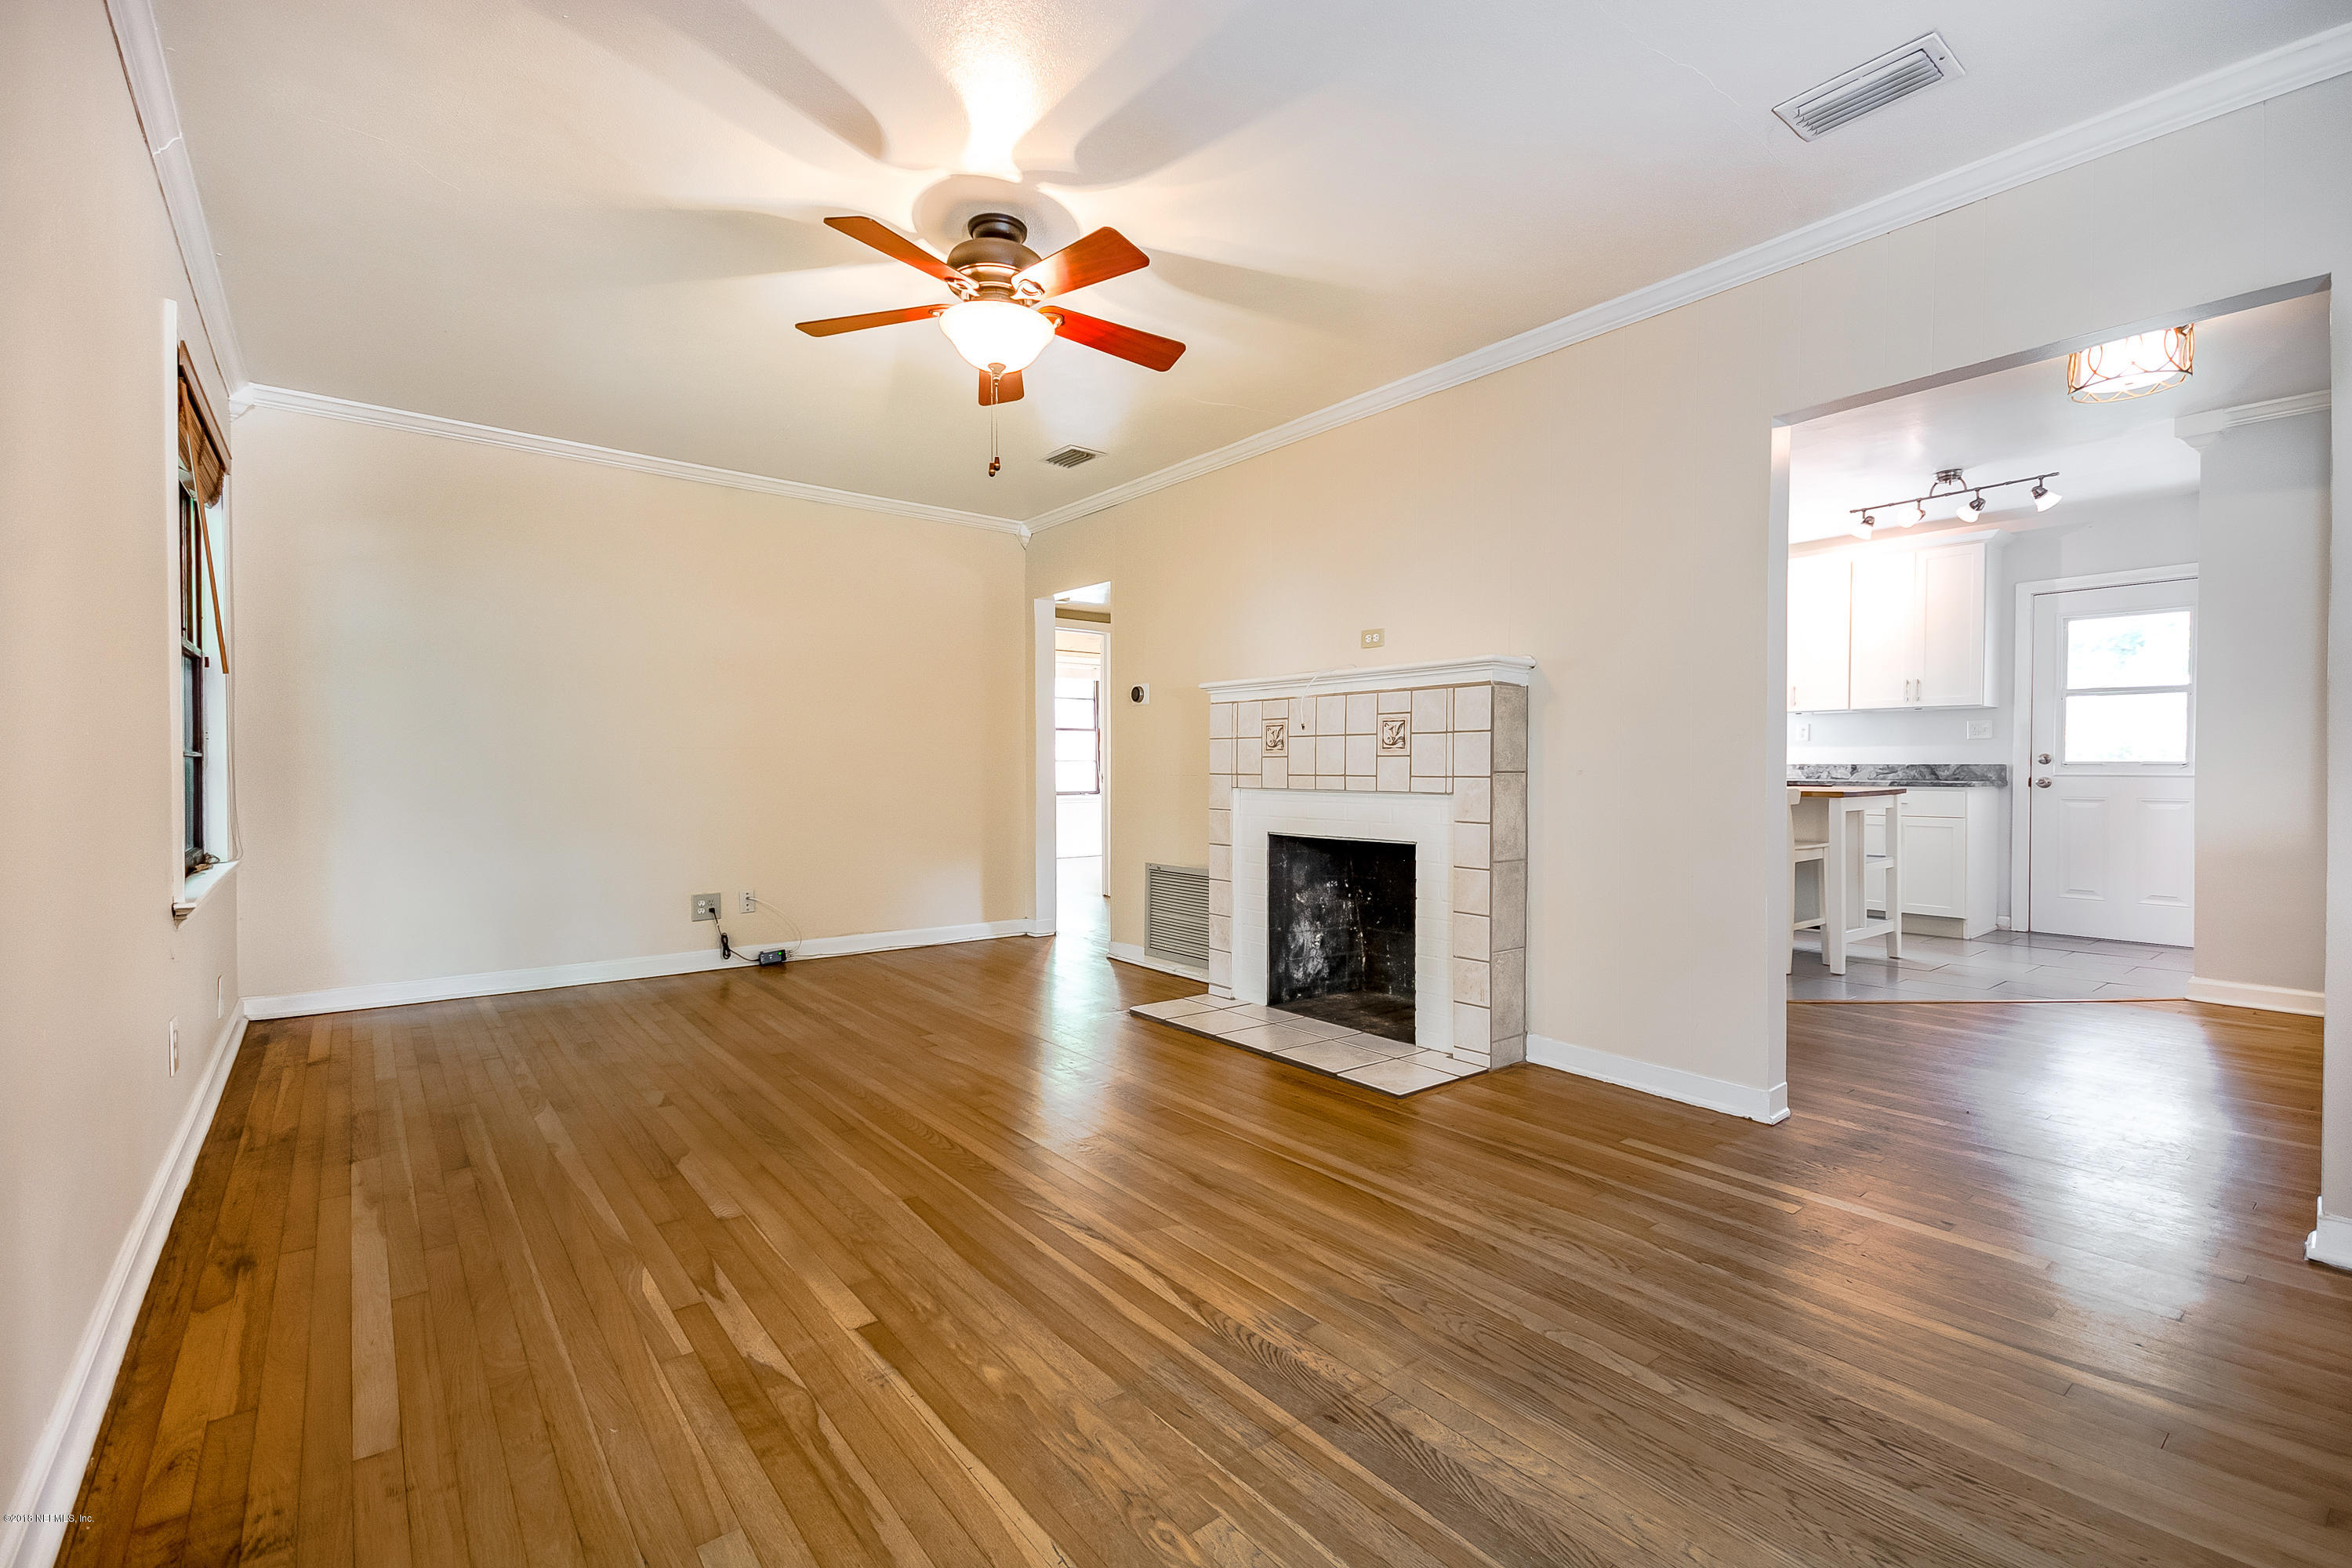 3815 PARK, JACKSONVILLE, FLORIDA 32205, 3 Bedrooms Bedrooms, ,1 BathroomBathrooms,Residential - single family,For sale,PARK,946670